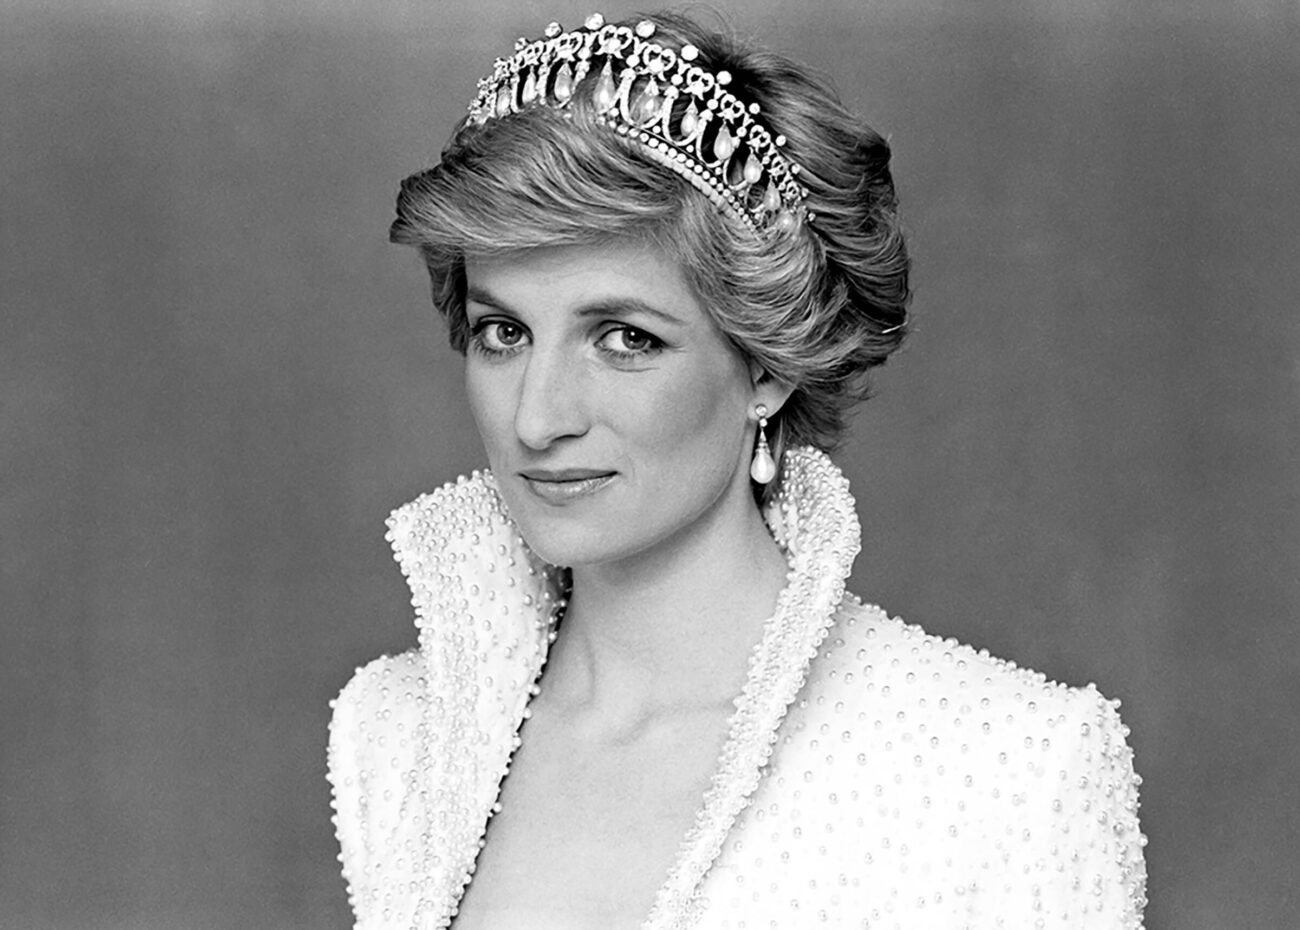 While many see young Princess Diana as a victim beyond reproach, others say she wasn't that innocent. Dive into the Spencer family history and see why.